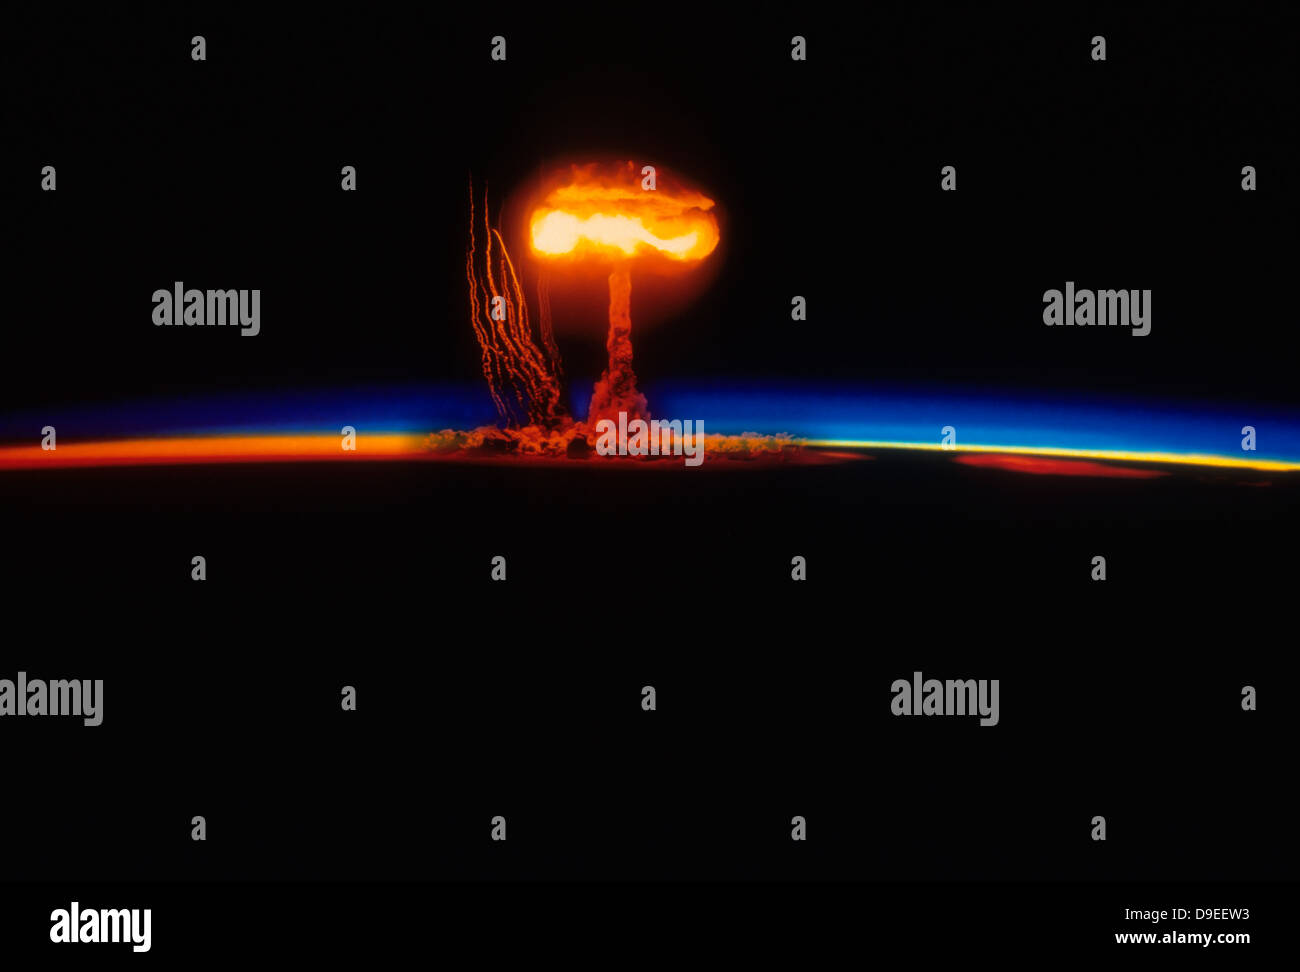 Nuclear Explosion - Stock Image